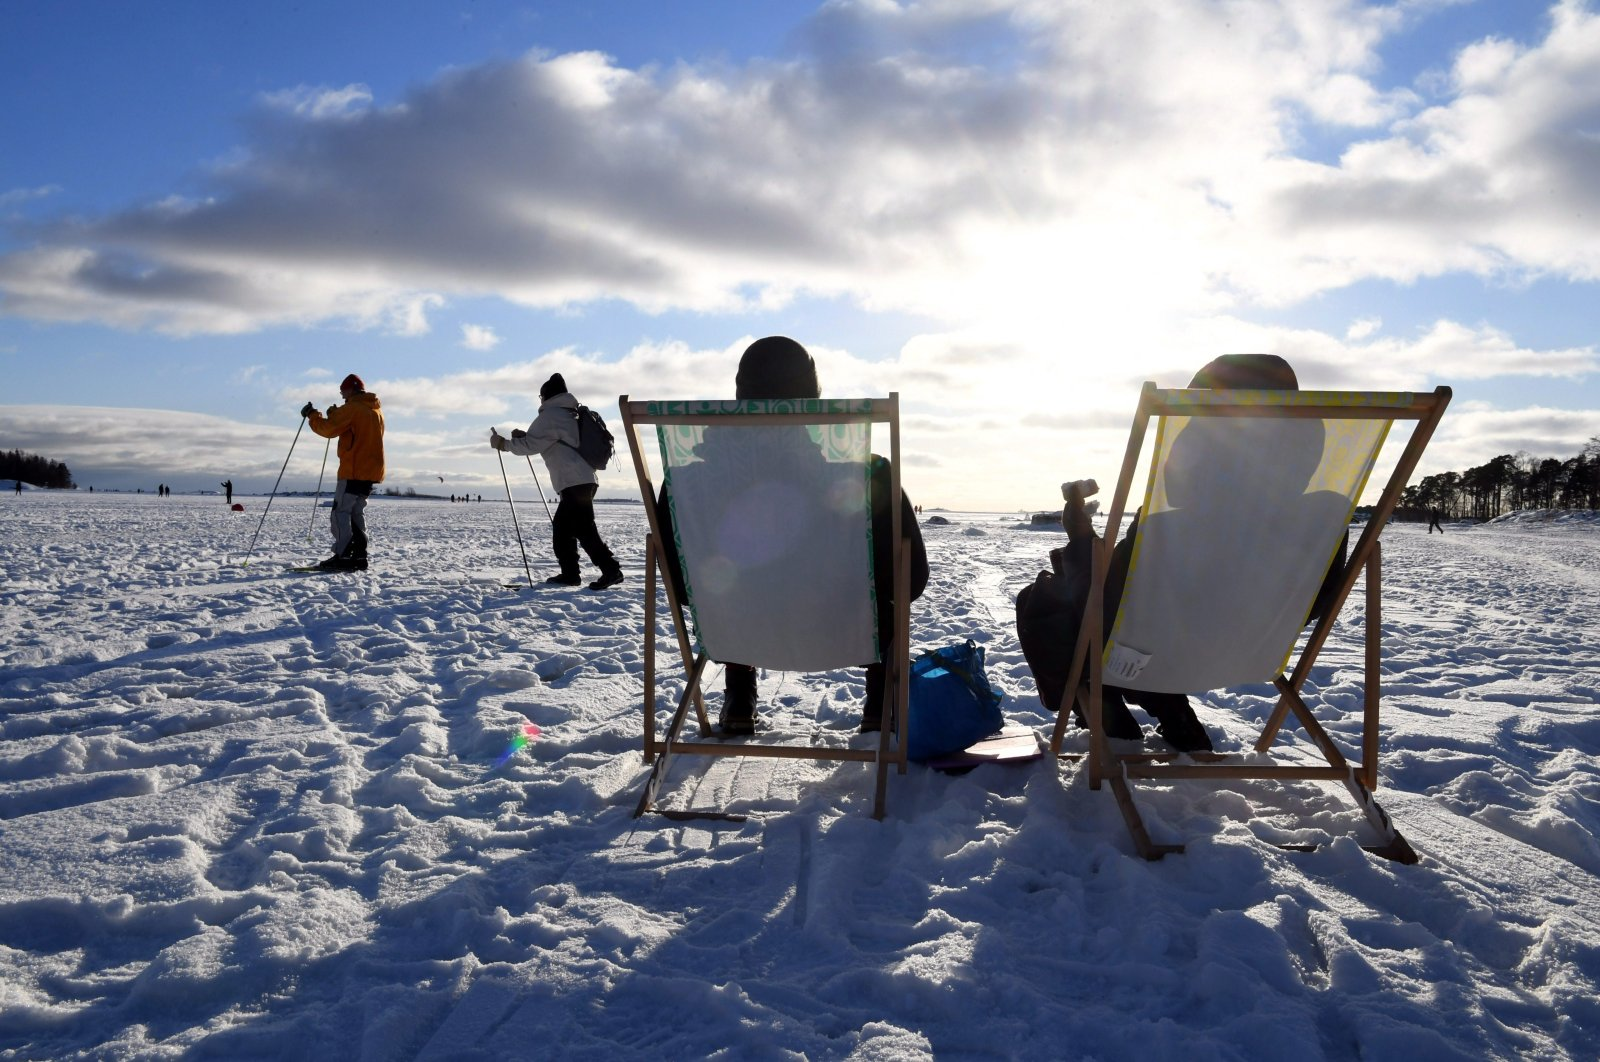 People sit in the sunshine as others ski by, during a sunny winter day on waterfront ice of Helsinki, Finland on Valentine's Day February 14, 2021. (AP)